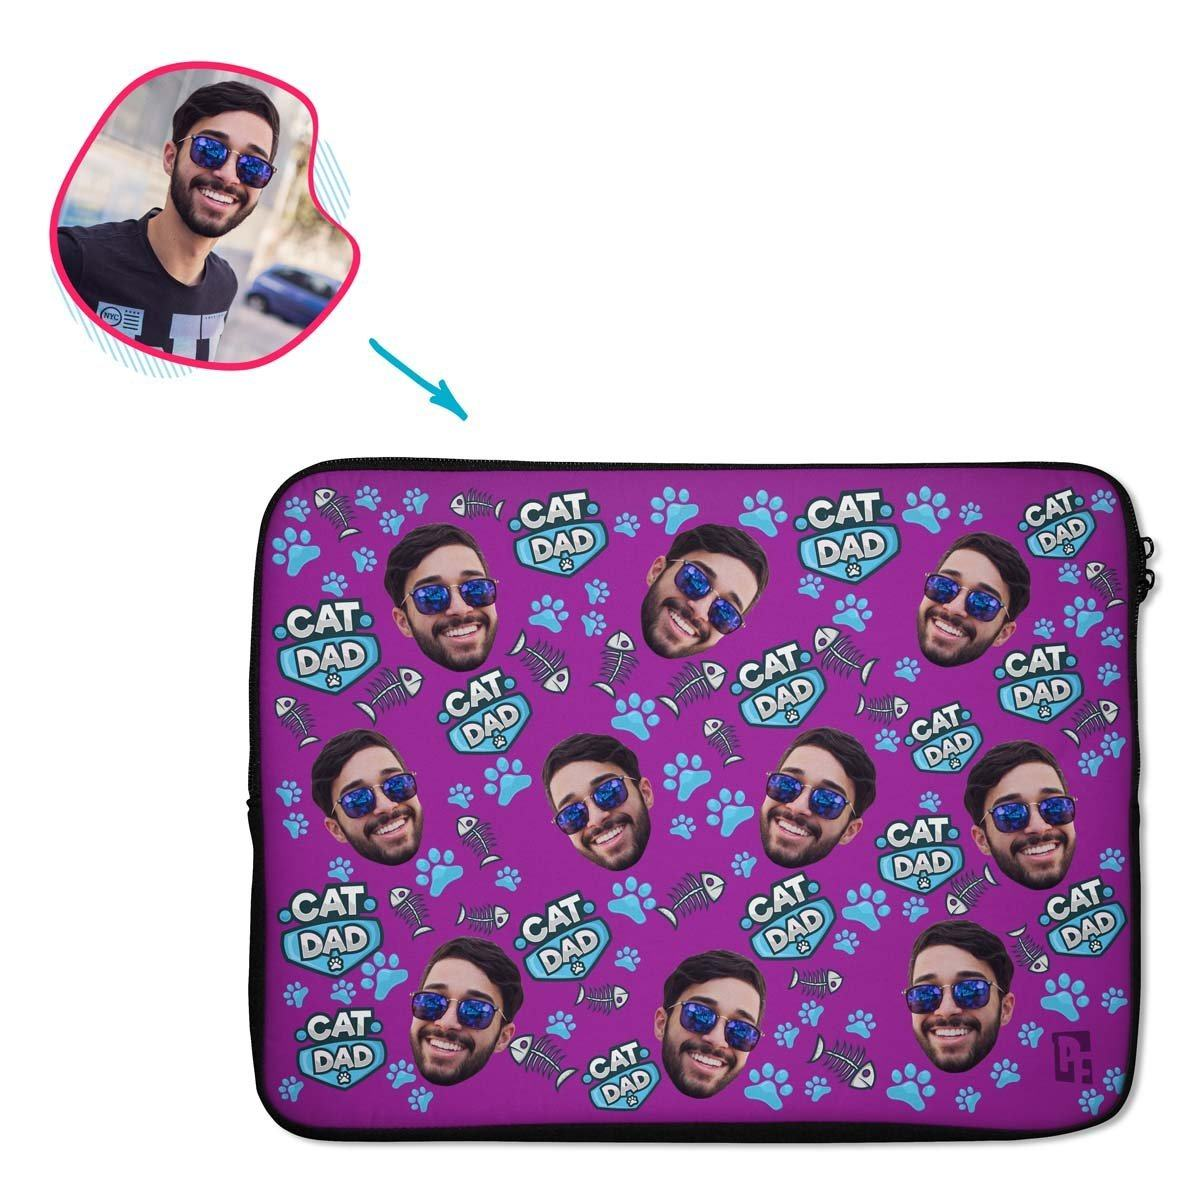 purple Cat Dad laptop sleeve personalized with photo of face printed on them